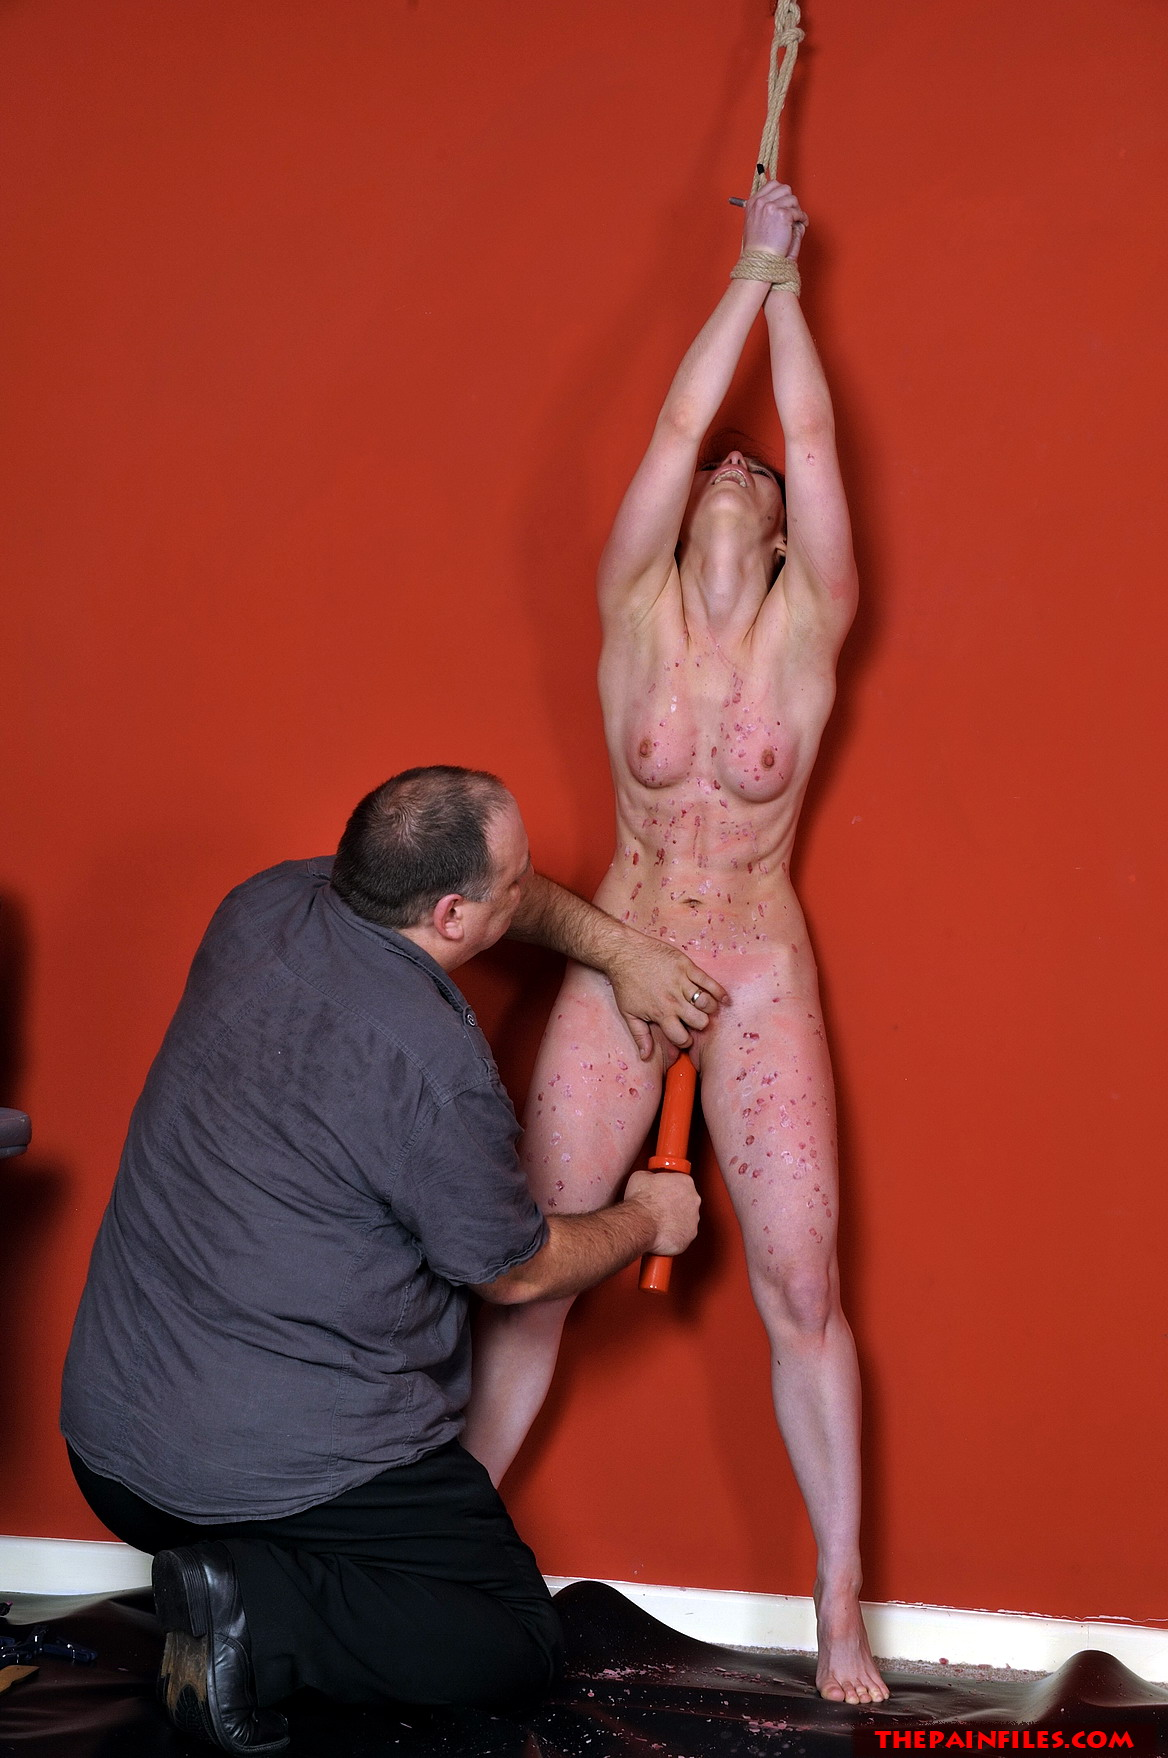 Poor slave punished with hot wax and hard spanking